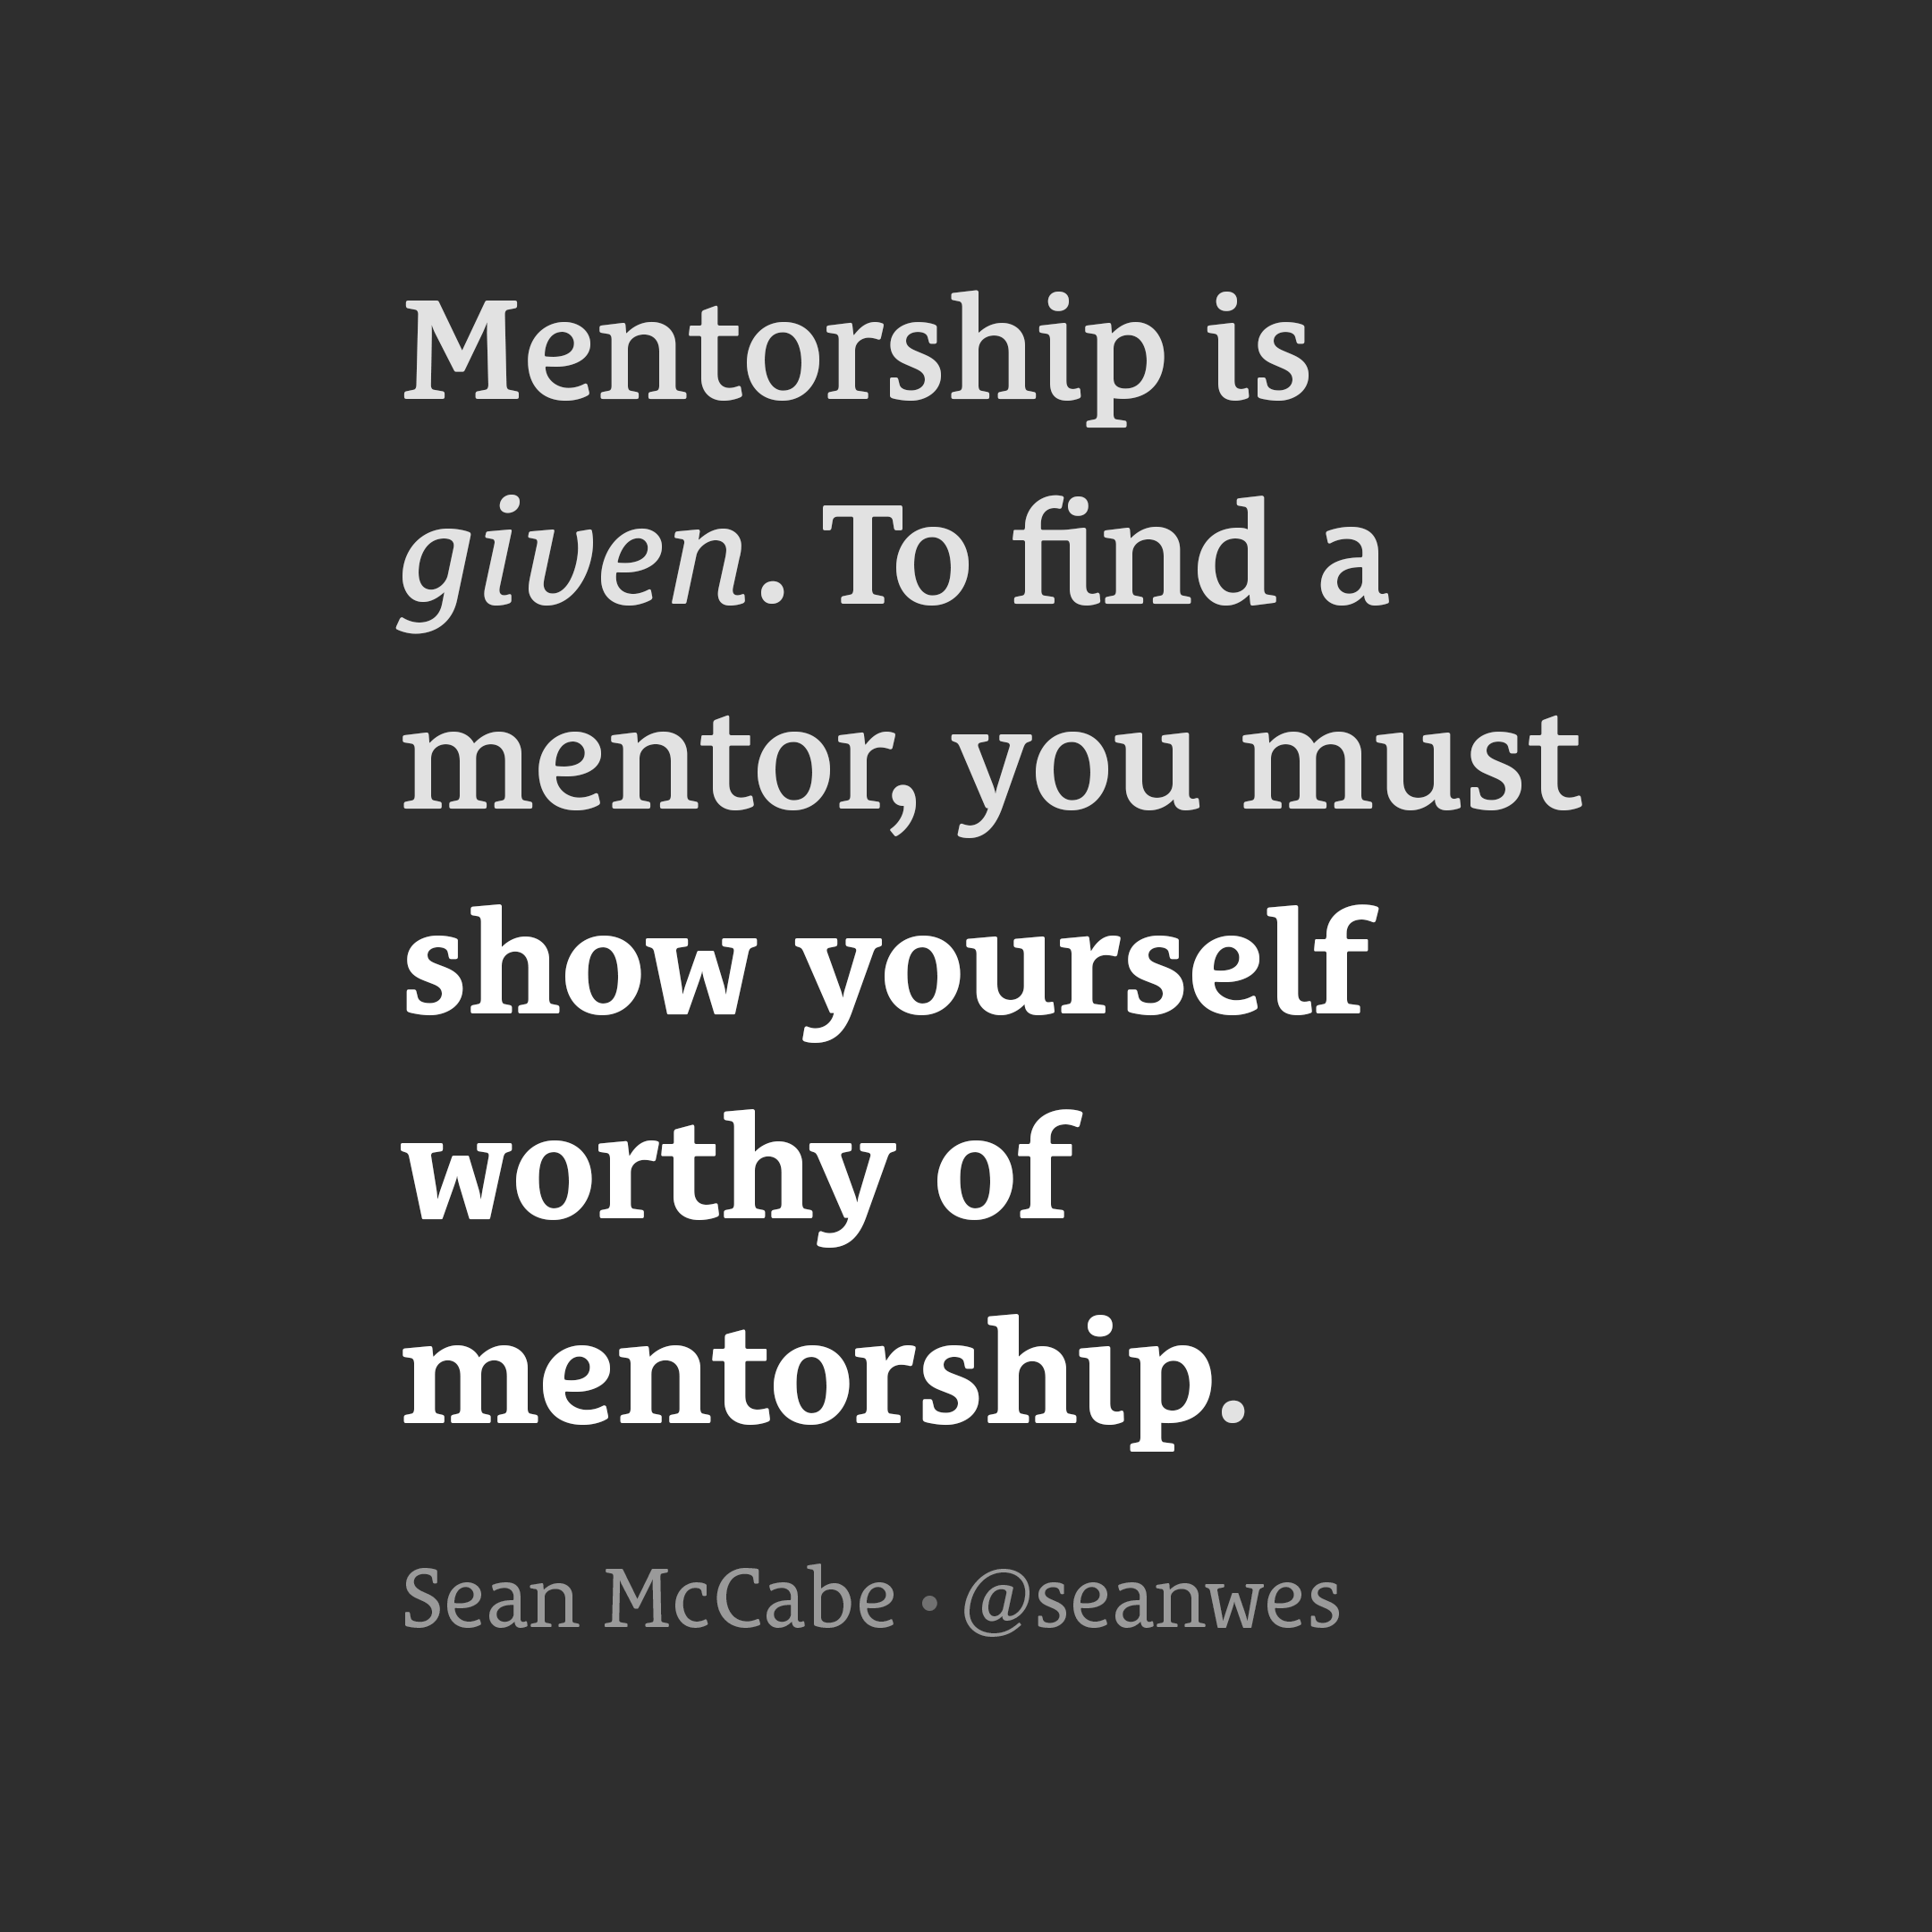 Mentorship is Given